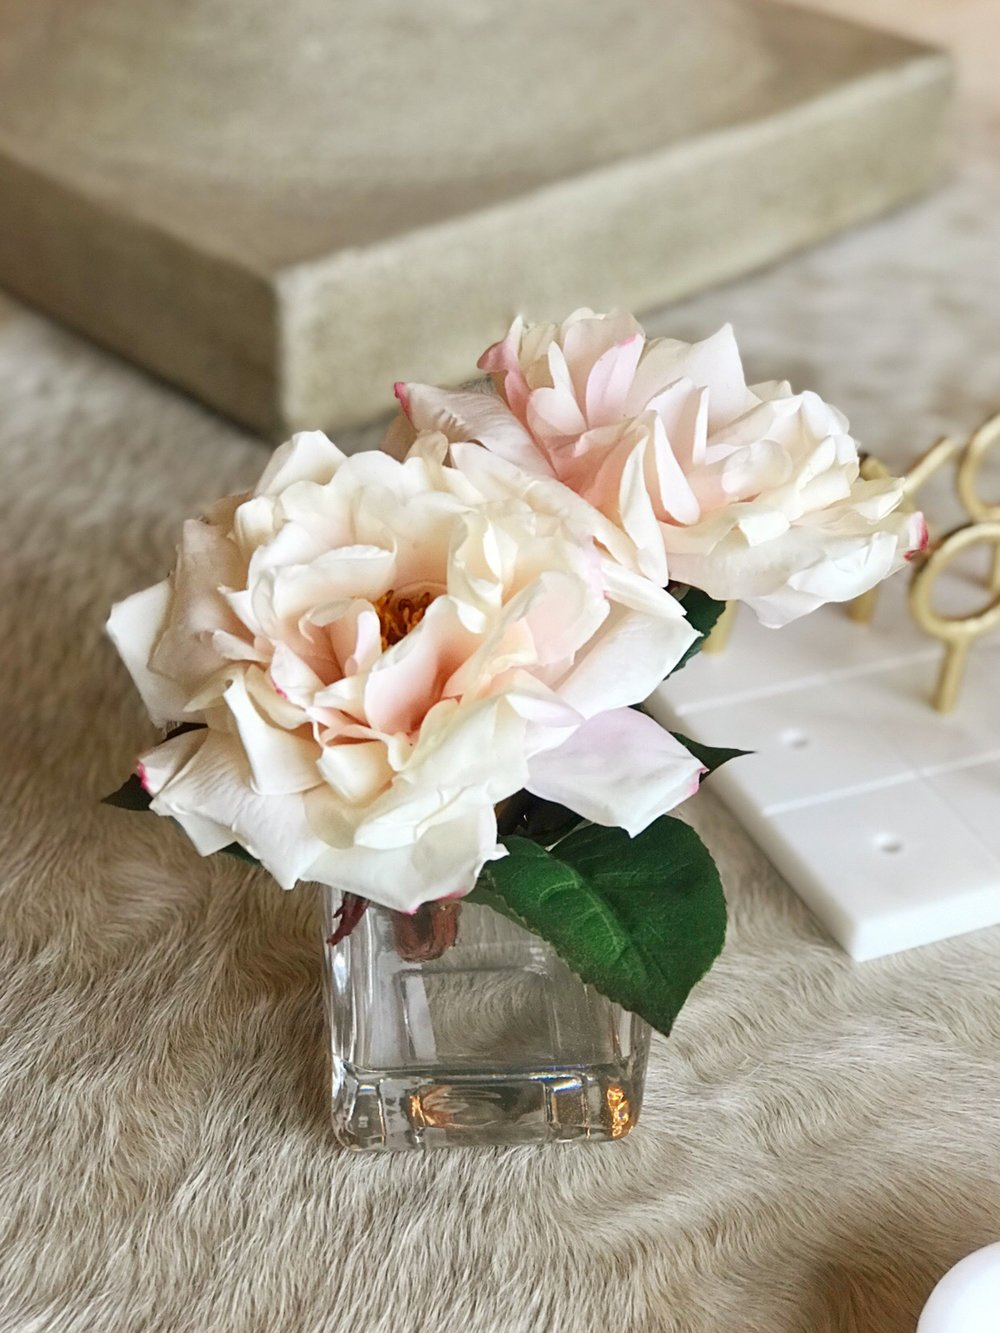 Faux roses in glass